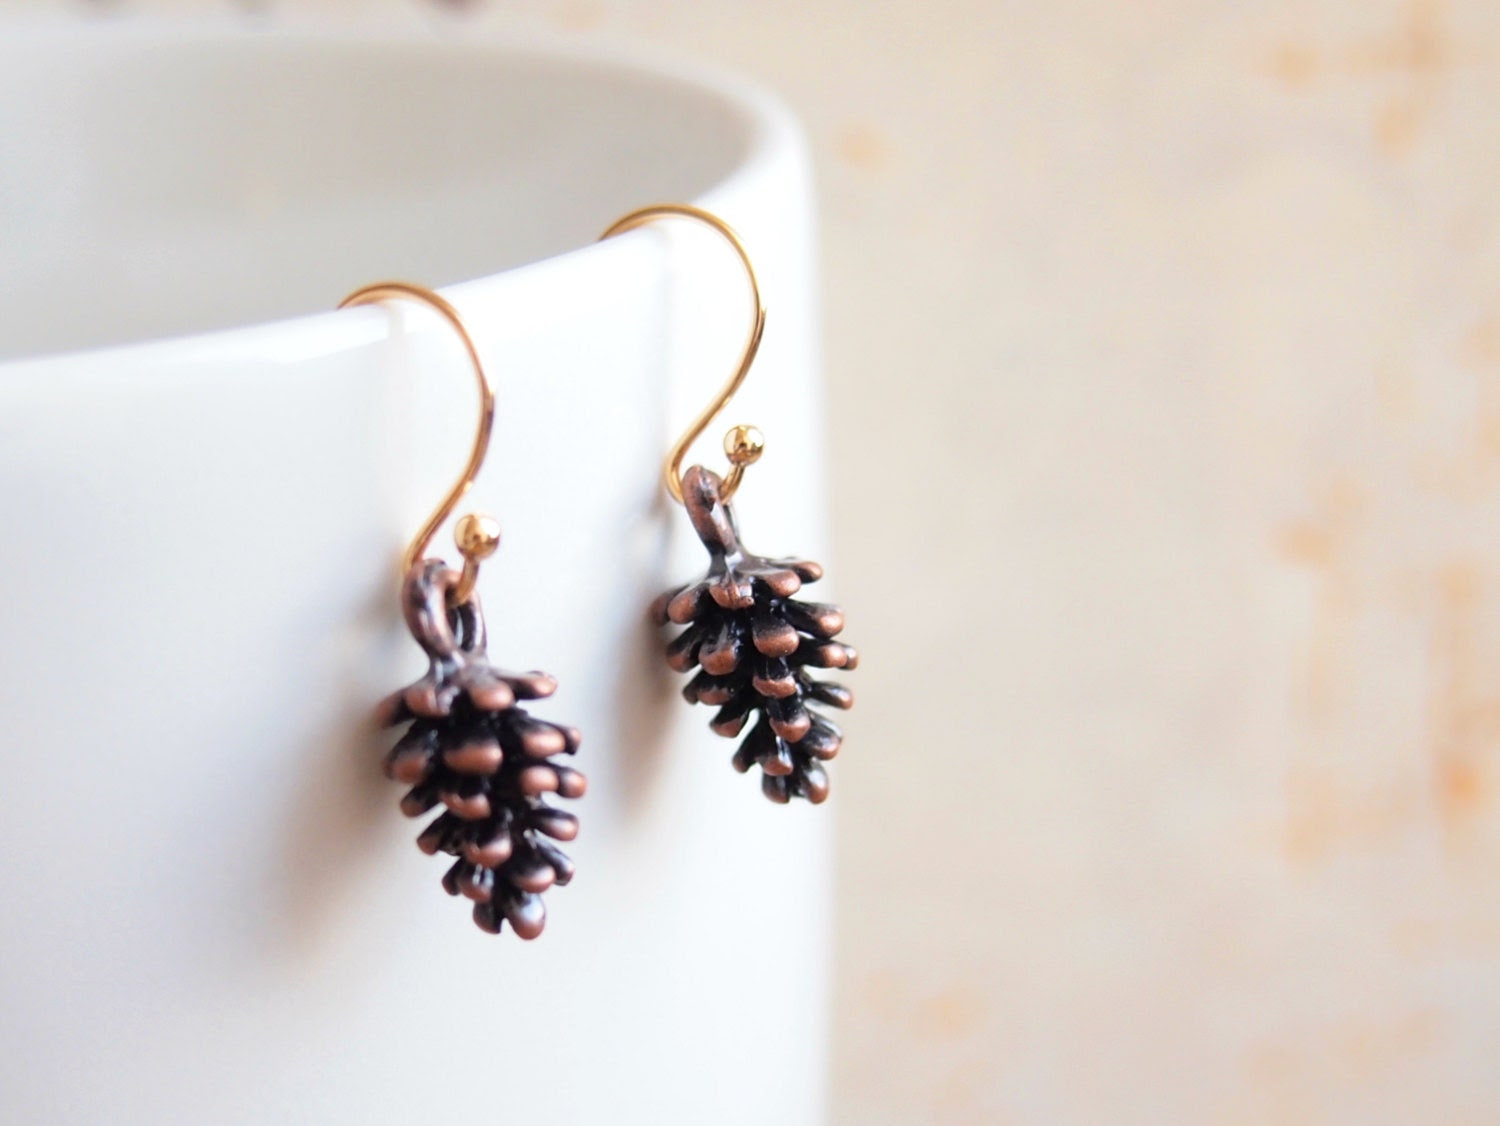 FREE SHIPPING-Pinecone Earrings, Forest charm Antiqued Copper,Gold-plated earwire,Fall Jewelry, Christmas Gift, Woodland Nature, Minimalist, - VintageDiary